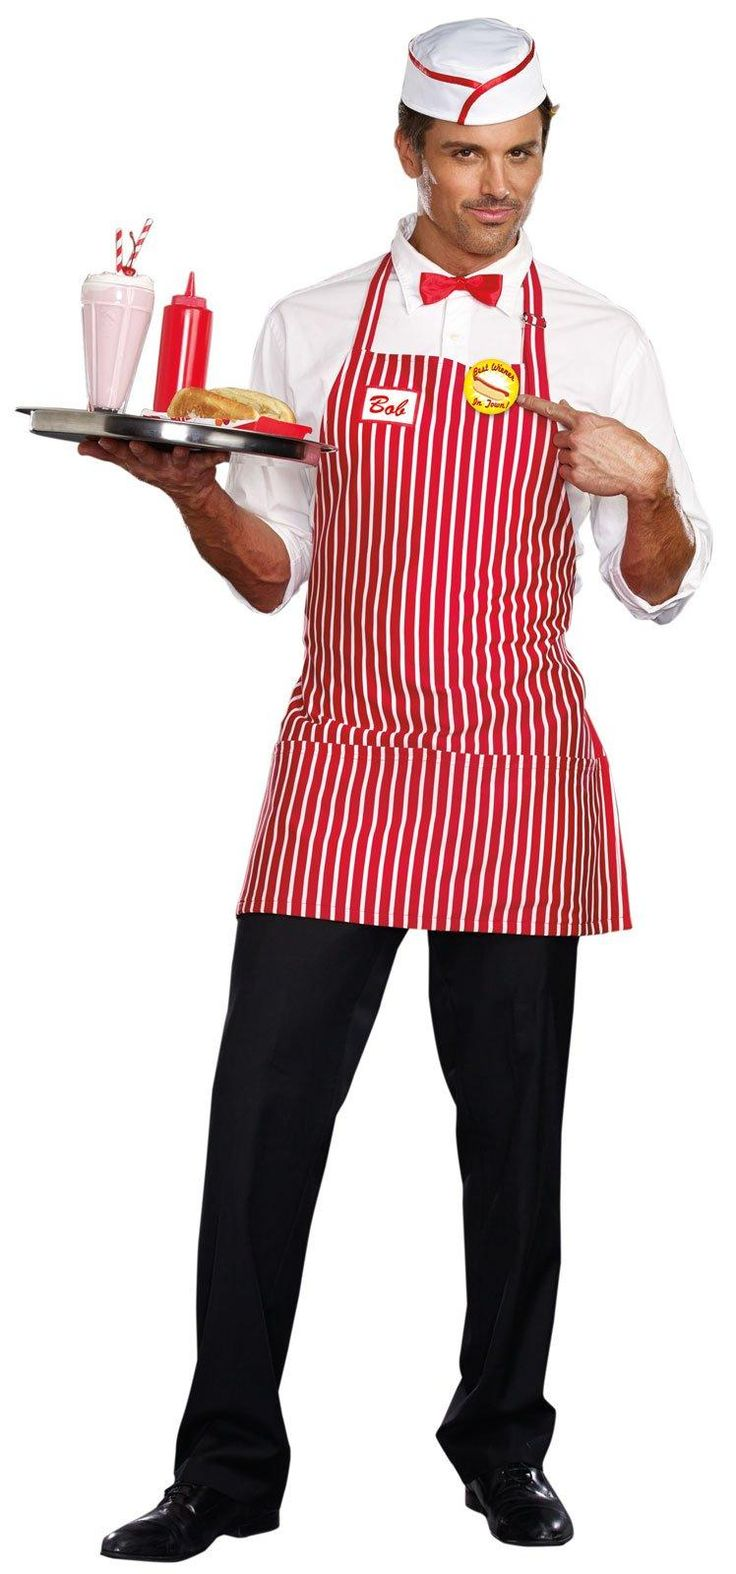 Diner Dude Costume For Men | Diners Costumes and Sock hop costumes